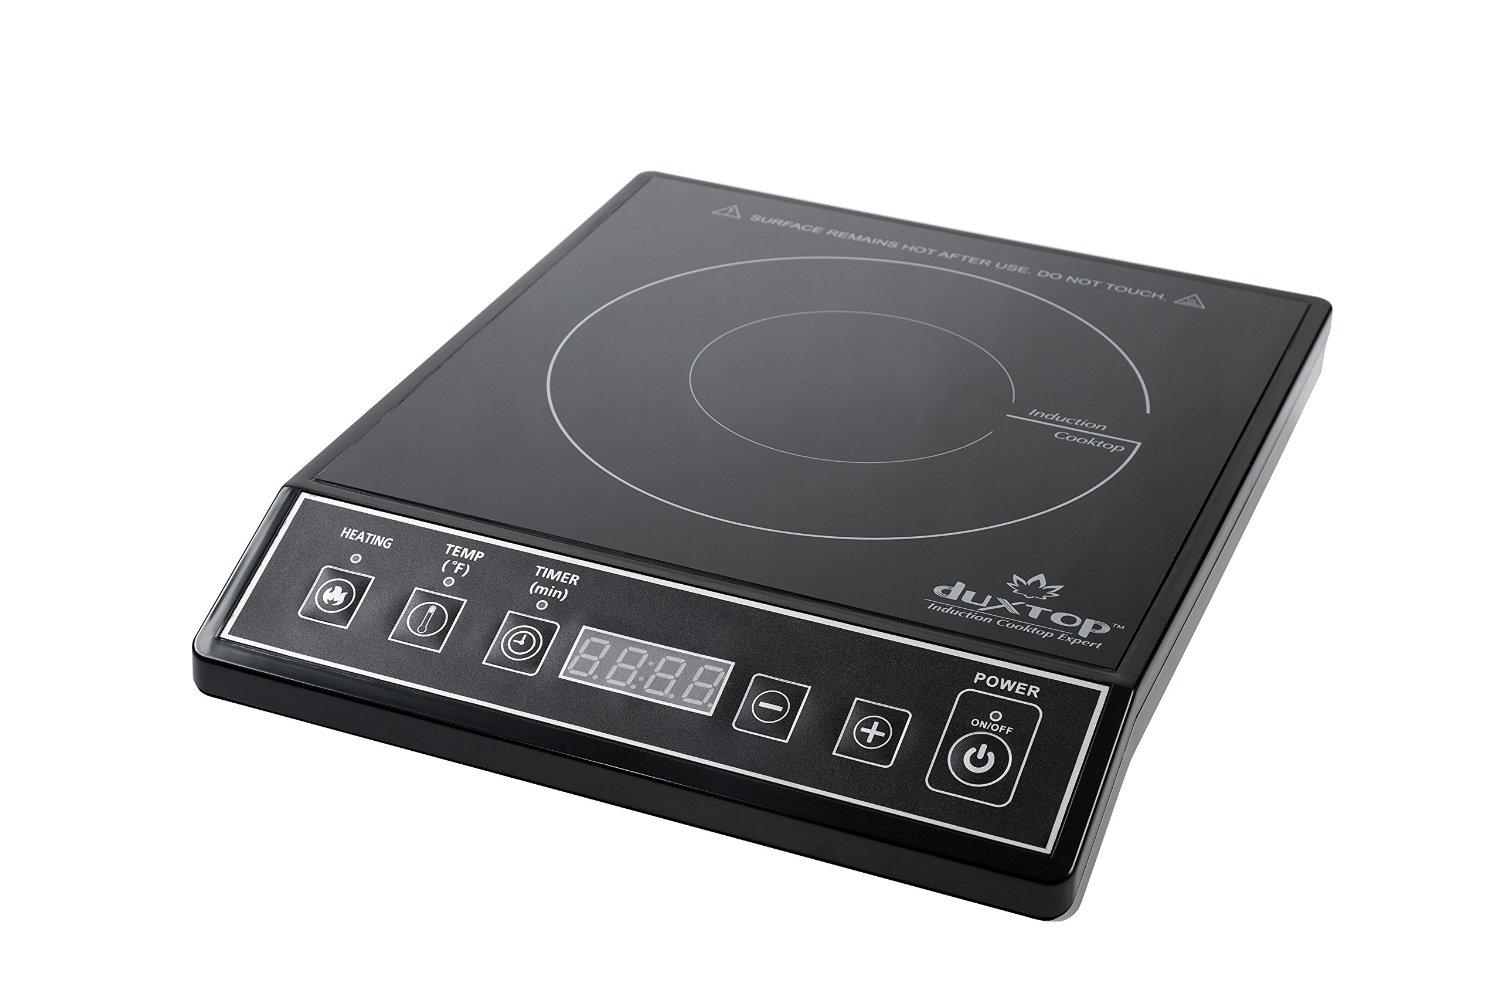 ... Induction Cooktop Countertop Burner, Black: Electric Countertop